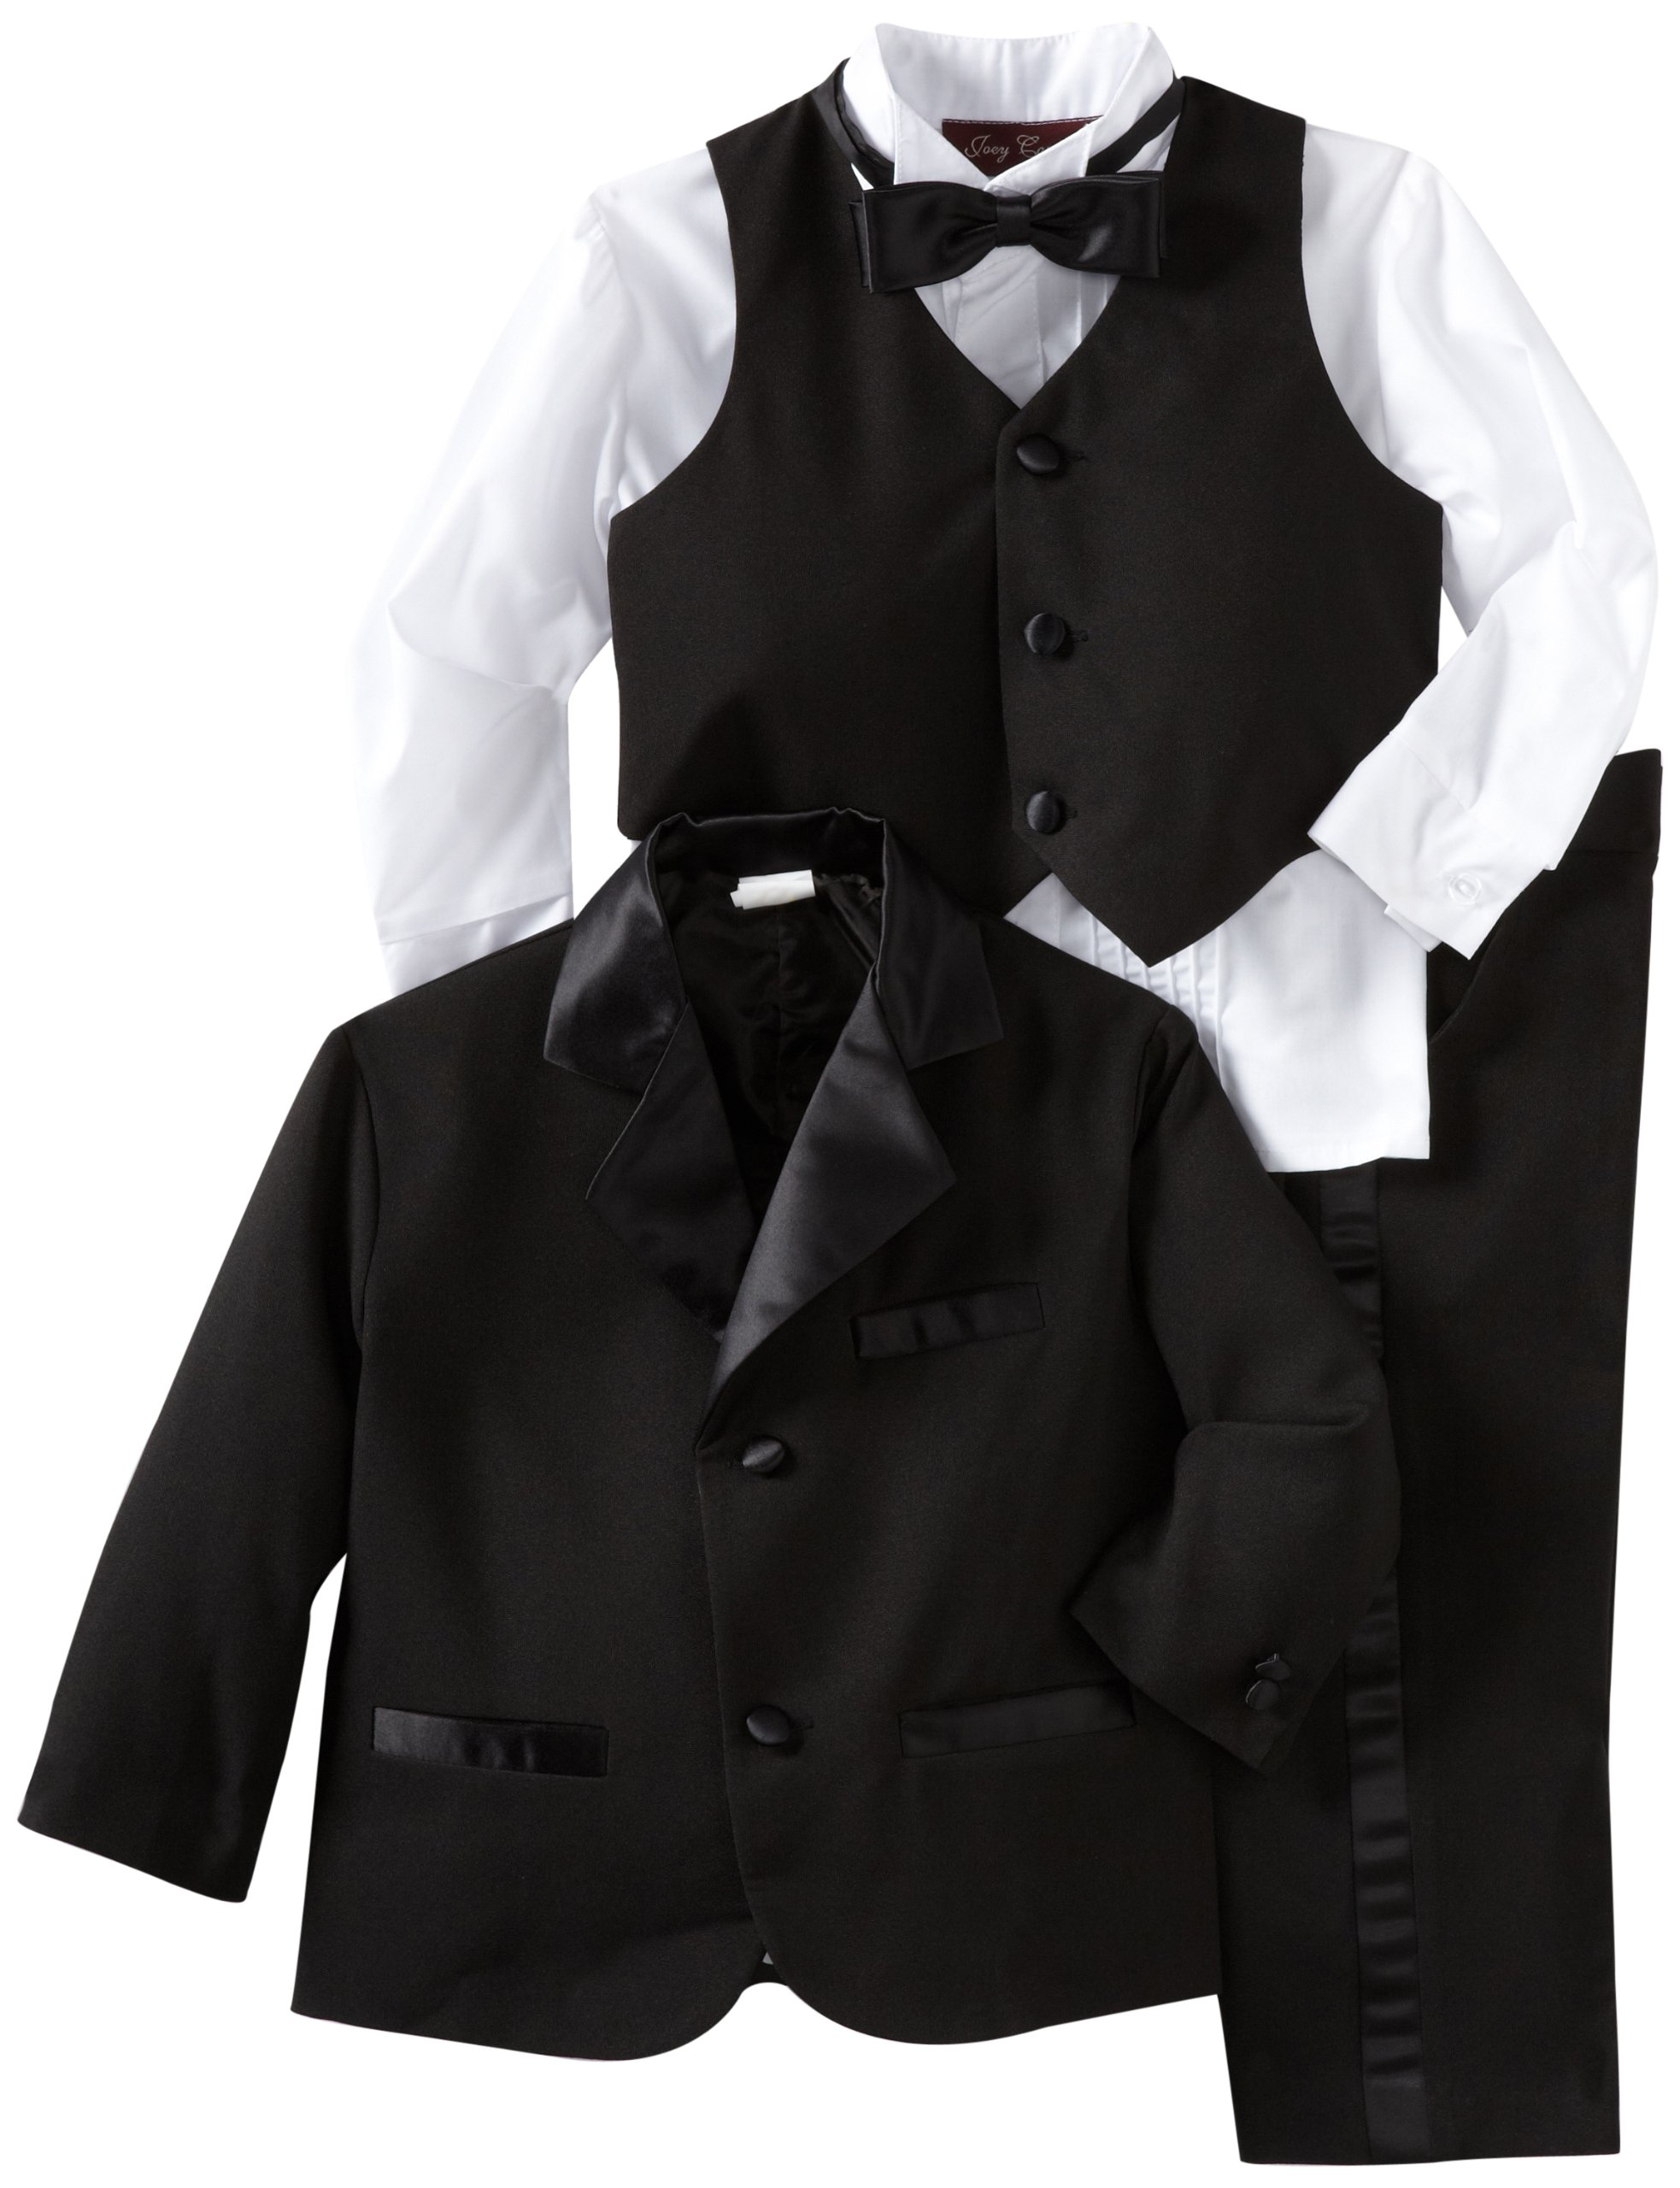 Joey Couture Little Boys' Little Tuxedo No Tail Suit,Black,6 by Joey Couture